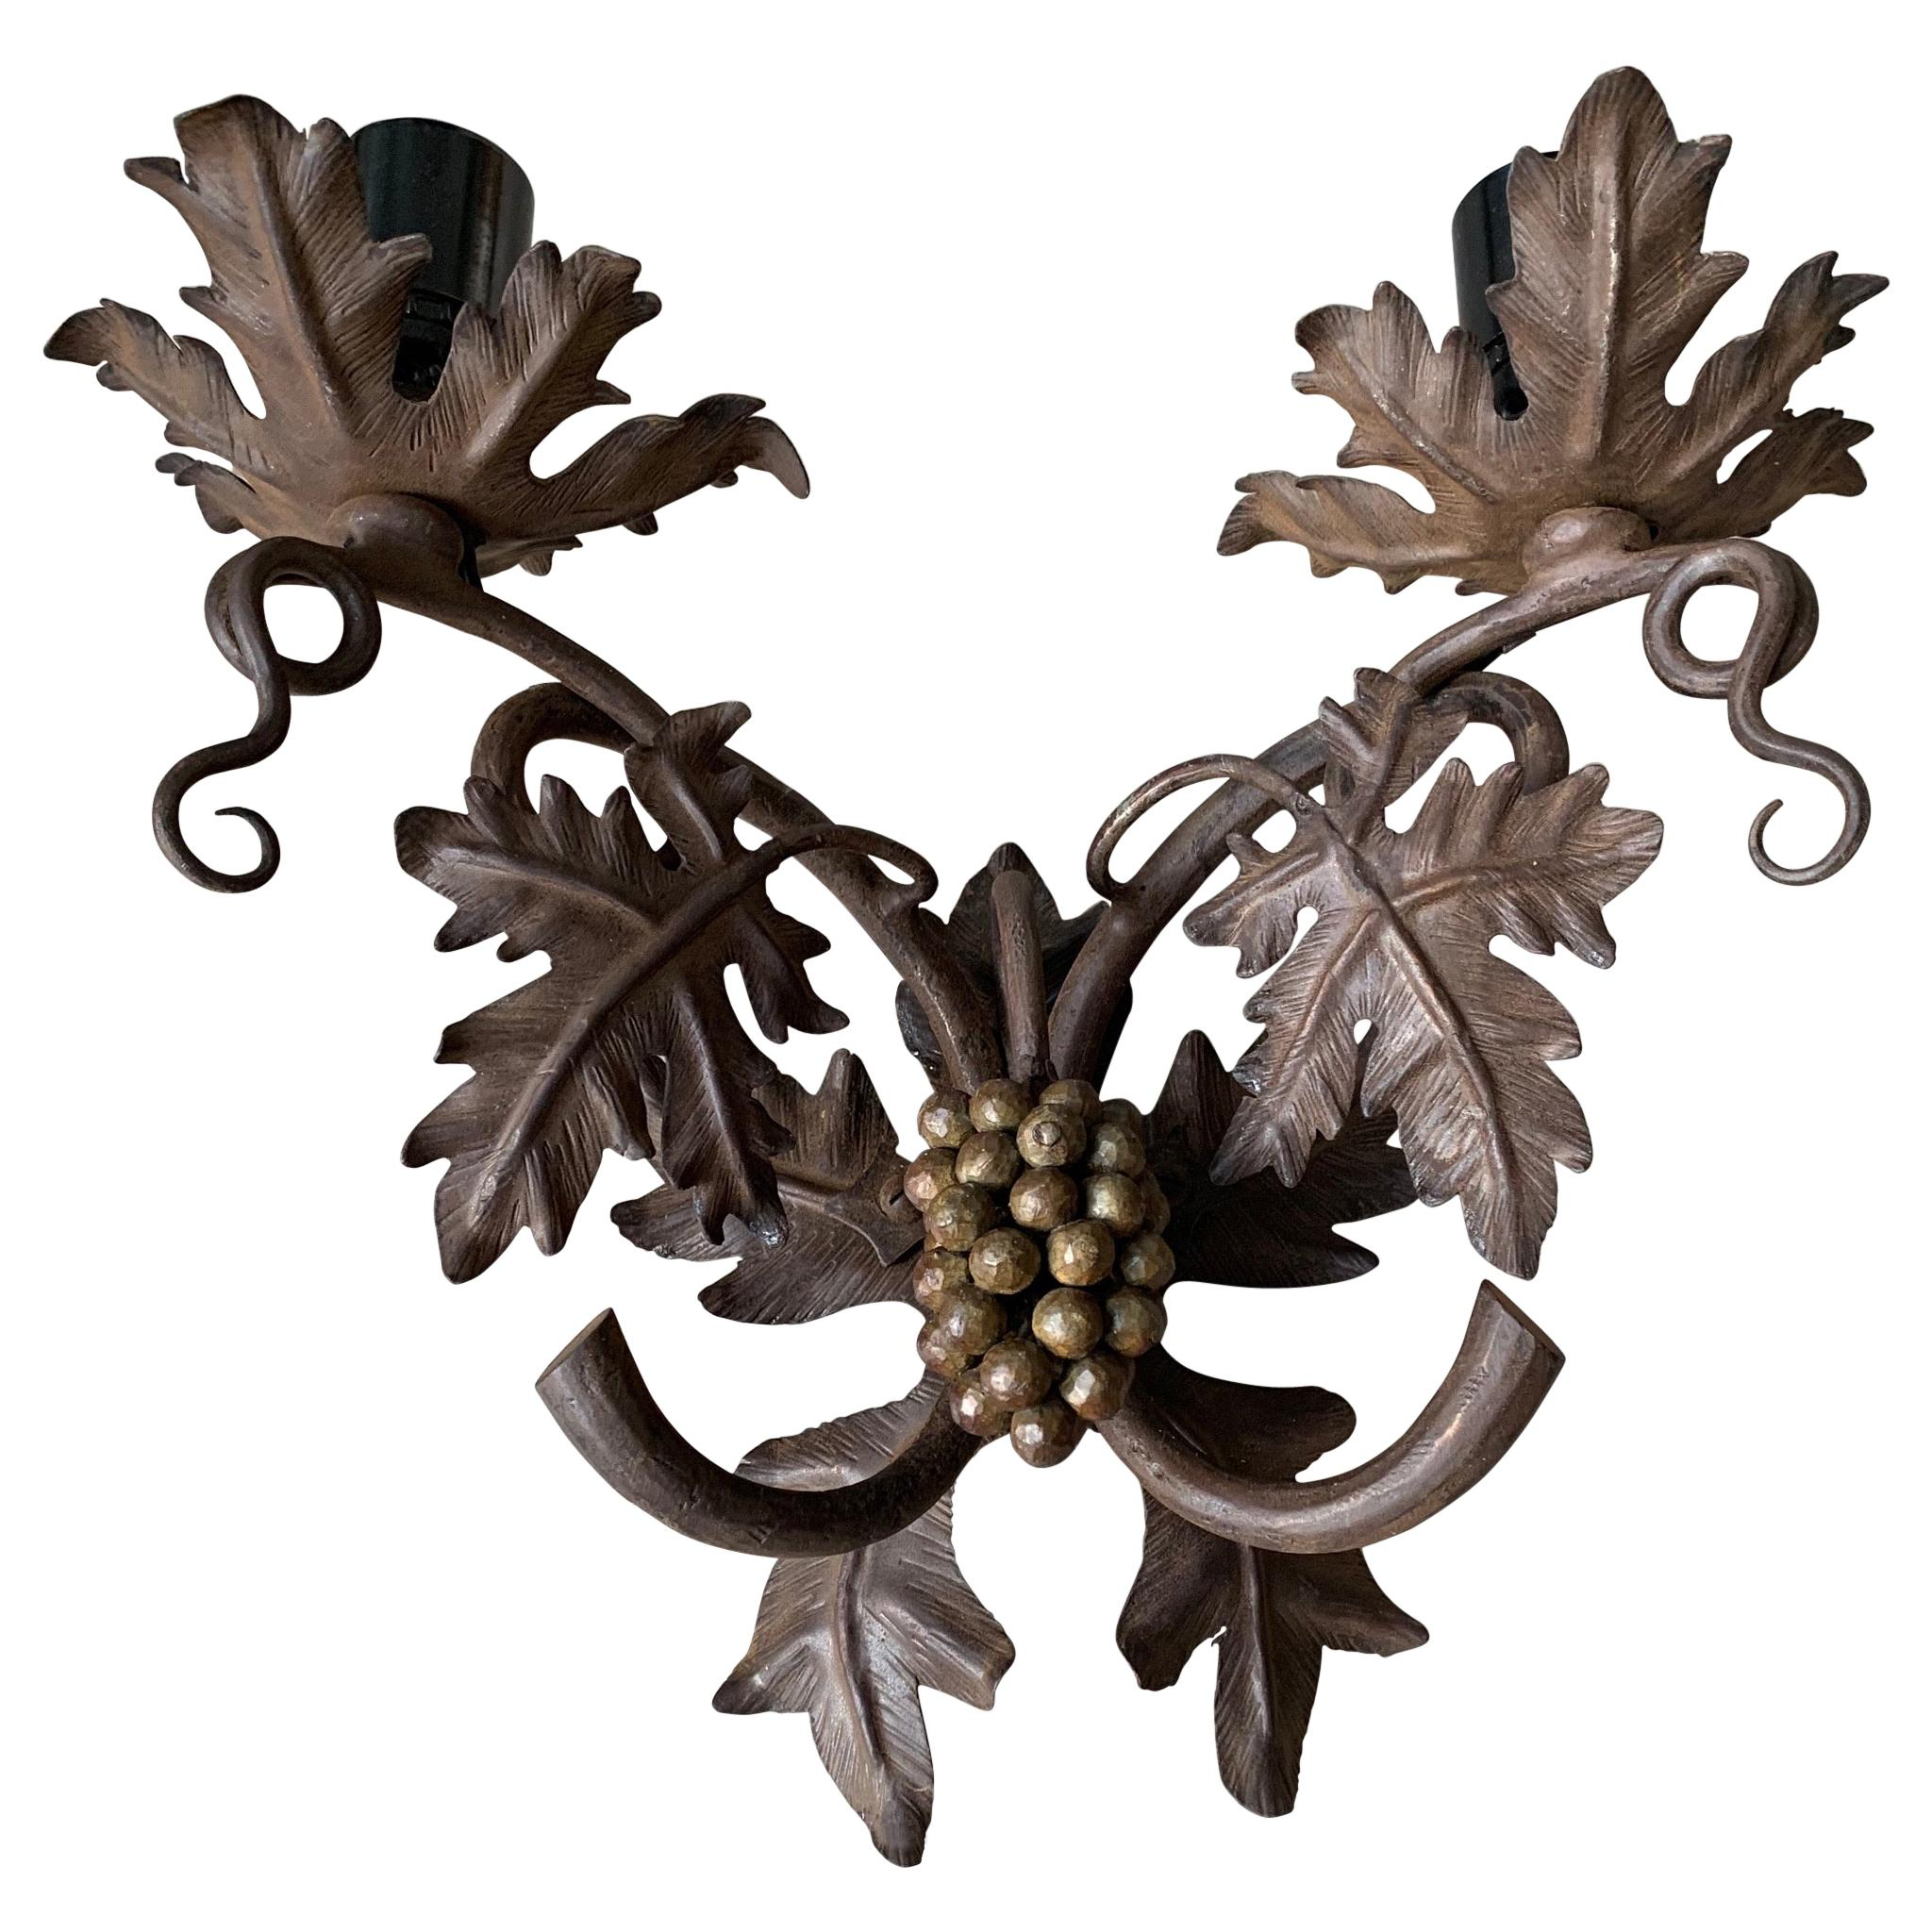 Antique Wine Theme Wall Lamp / Sconce with Wrought Iron Bunch of Grapes & Leafs